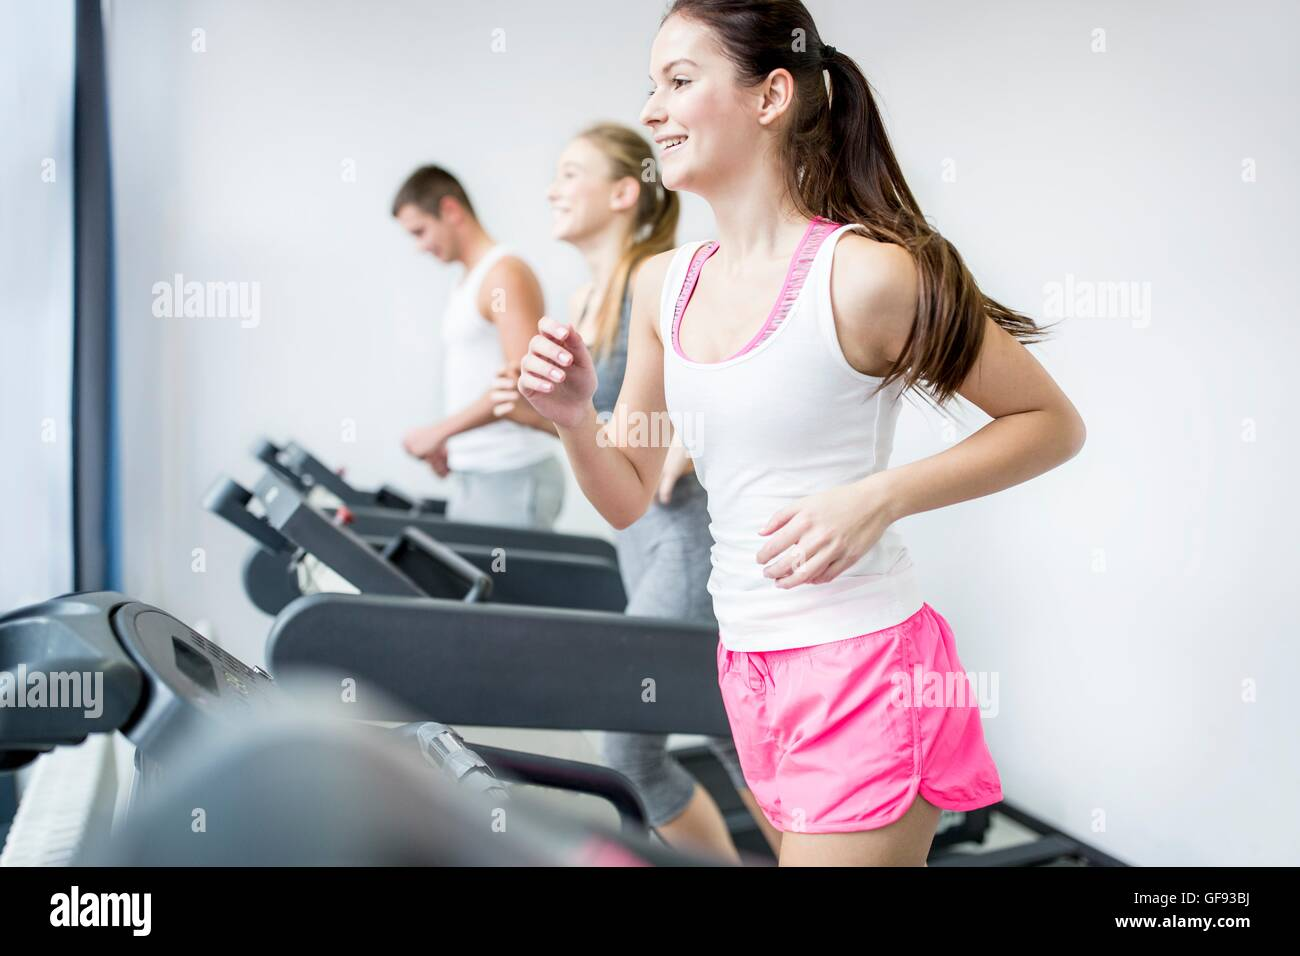 PROPERTY RELEASED. MODEL RELEASED. Young man and women running on exercise machines in gym. - Stock Image